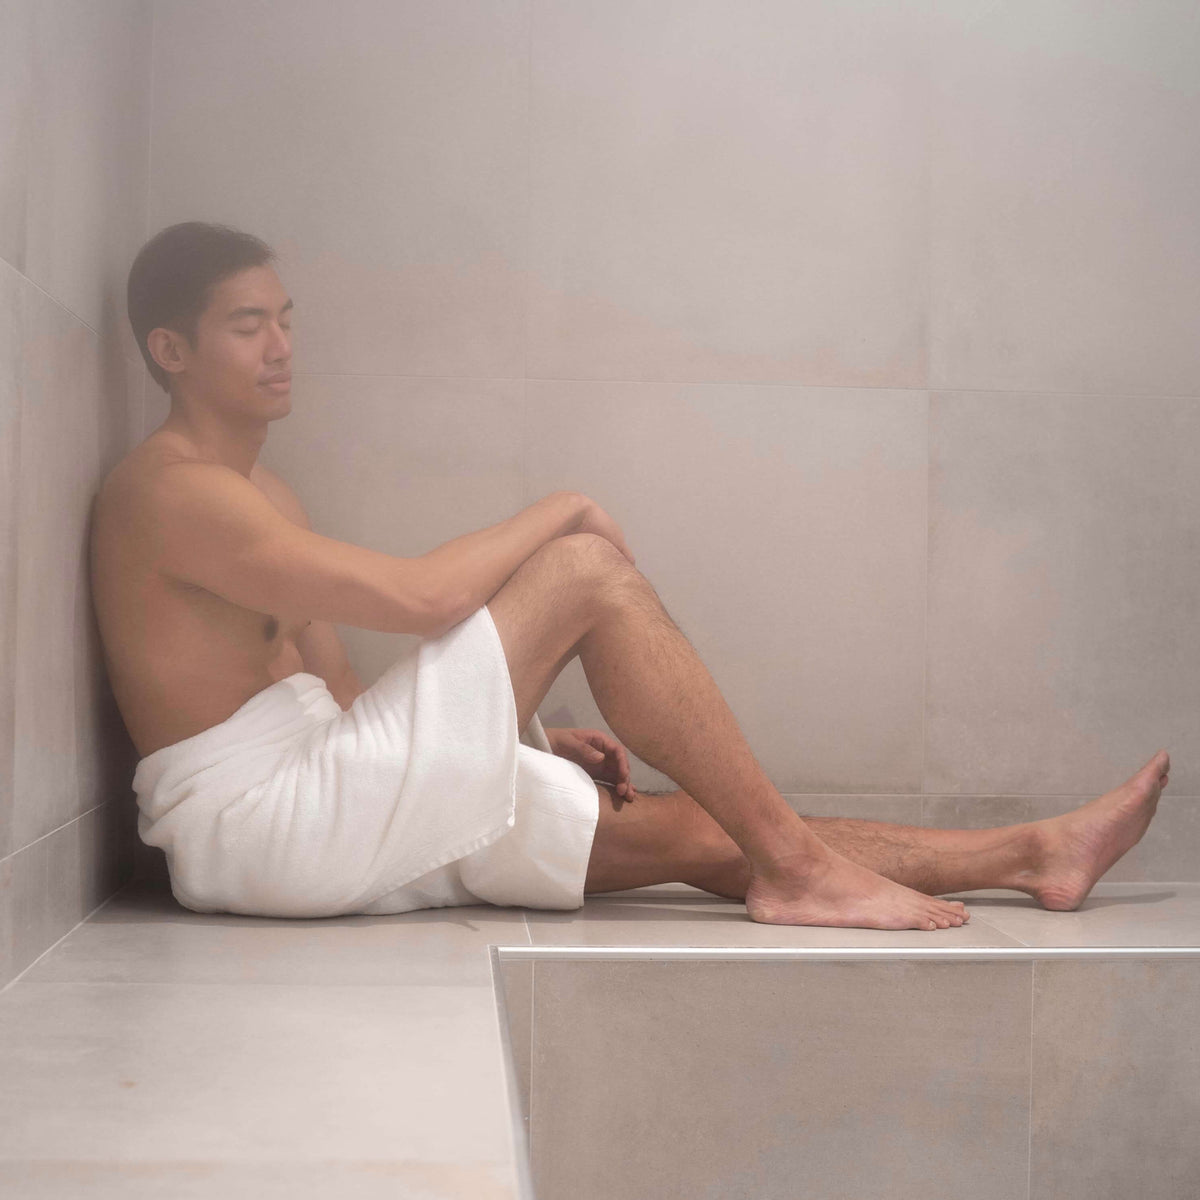 Man in Steam Room